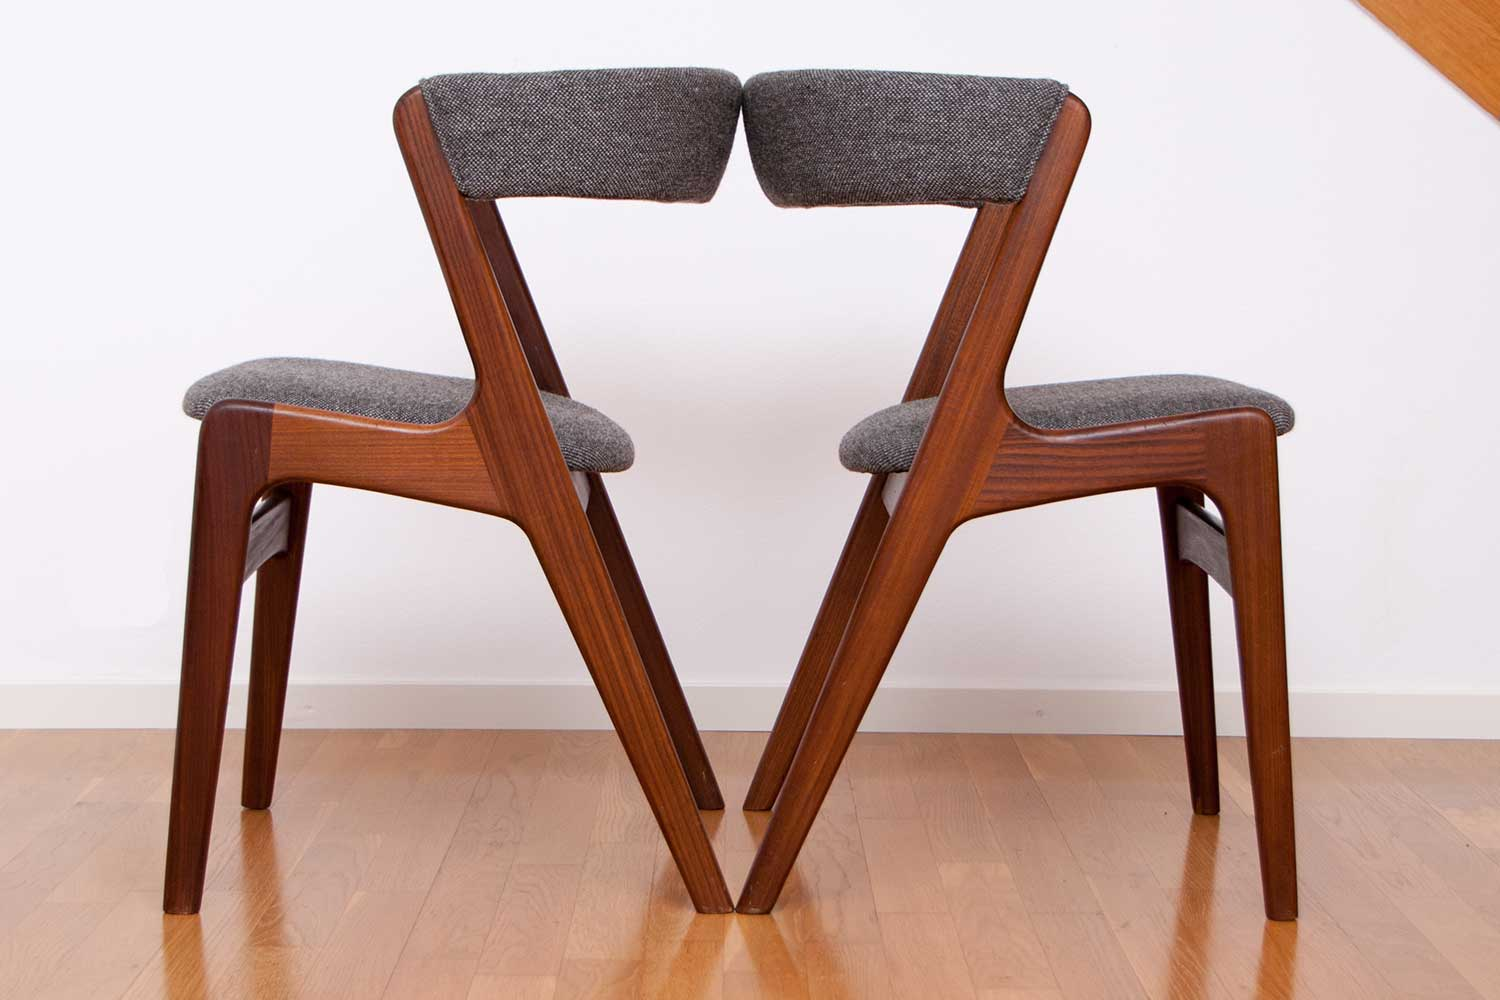 Kai kristiansen fire chair sold scandinavian design exclusive furniture - Kai kristiansen chairs ...